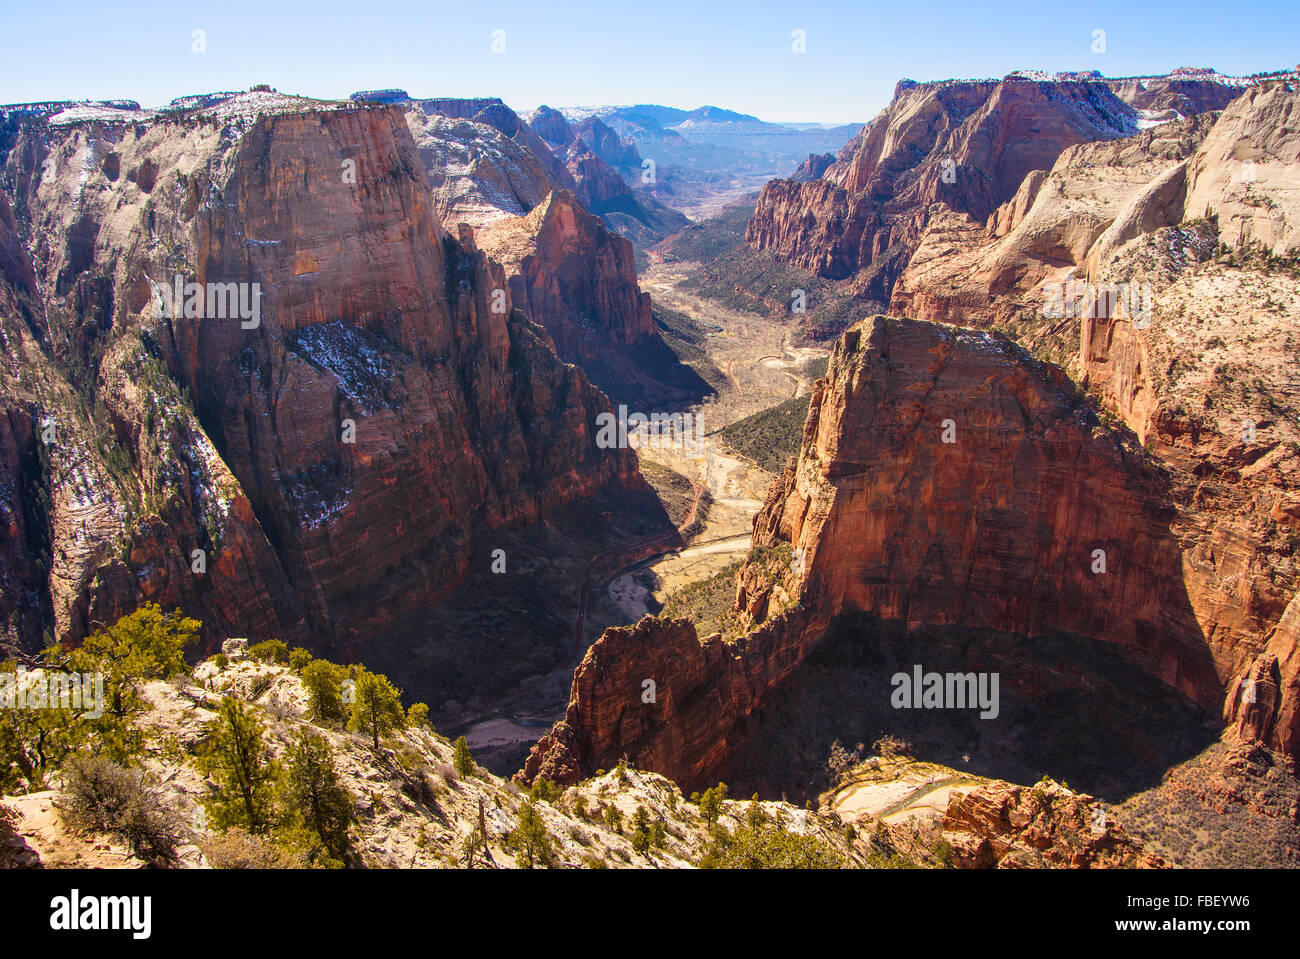 Ansicht der Canyon, Zion Nationalpark Stockbild